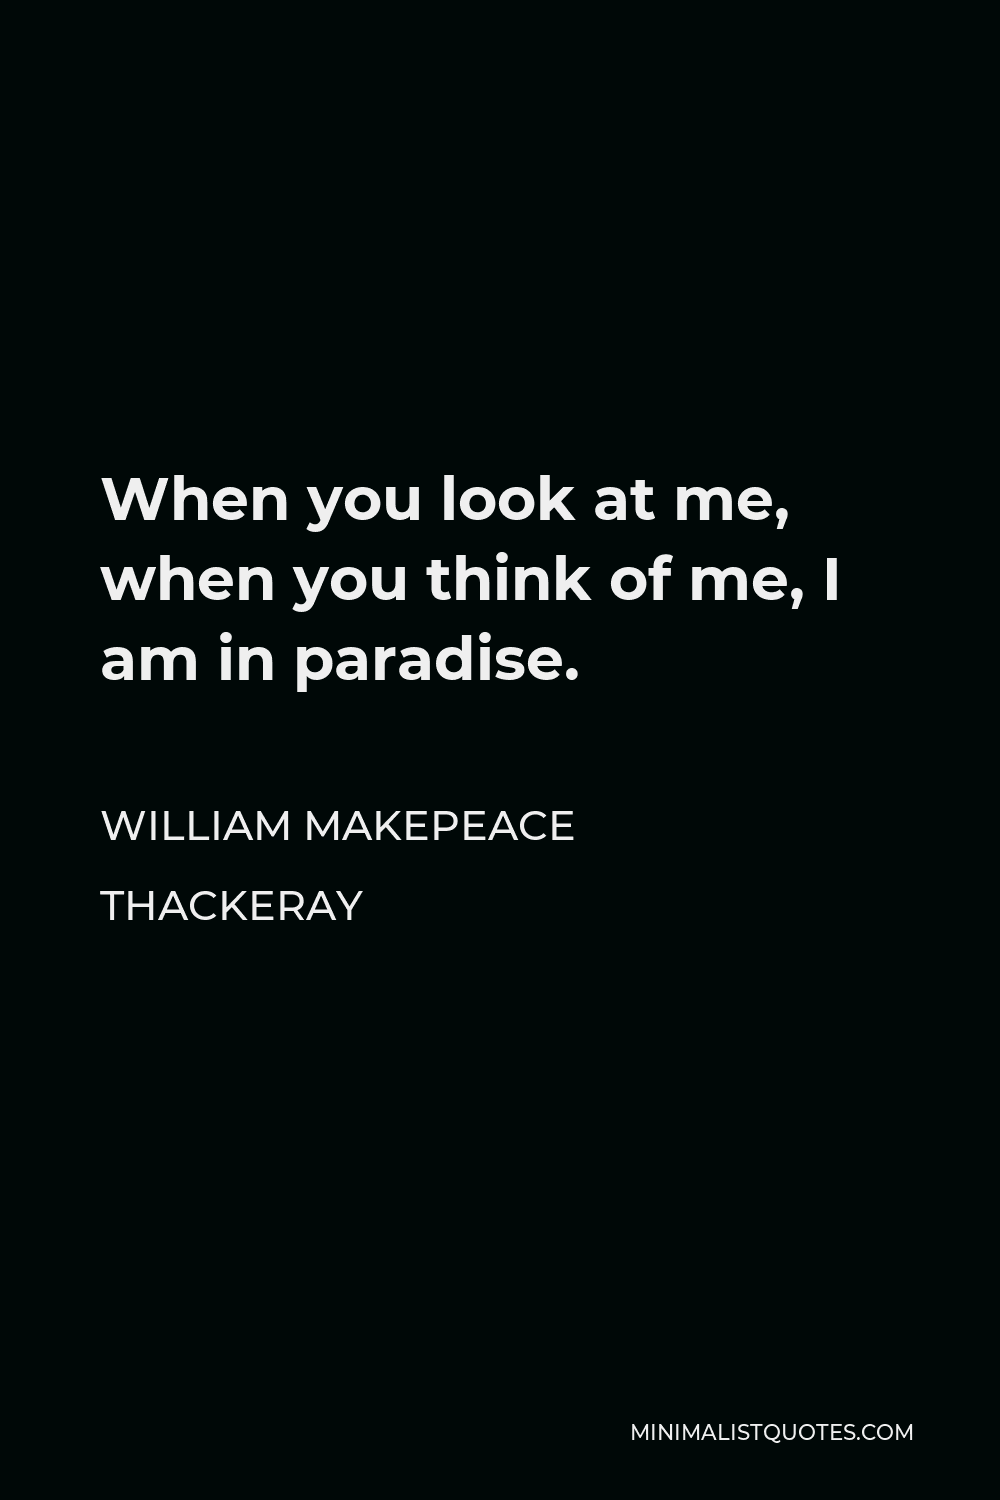 William Makepeace Thackeray Quote - When you look at me, when you think of me, I am in paradise.